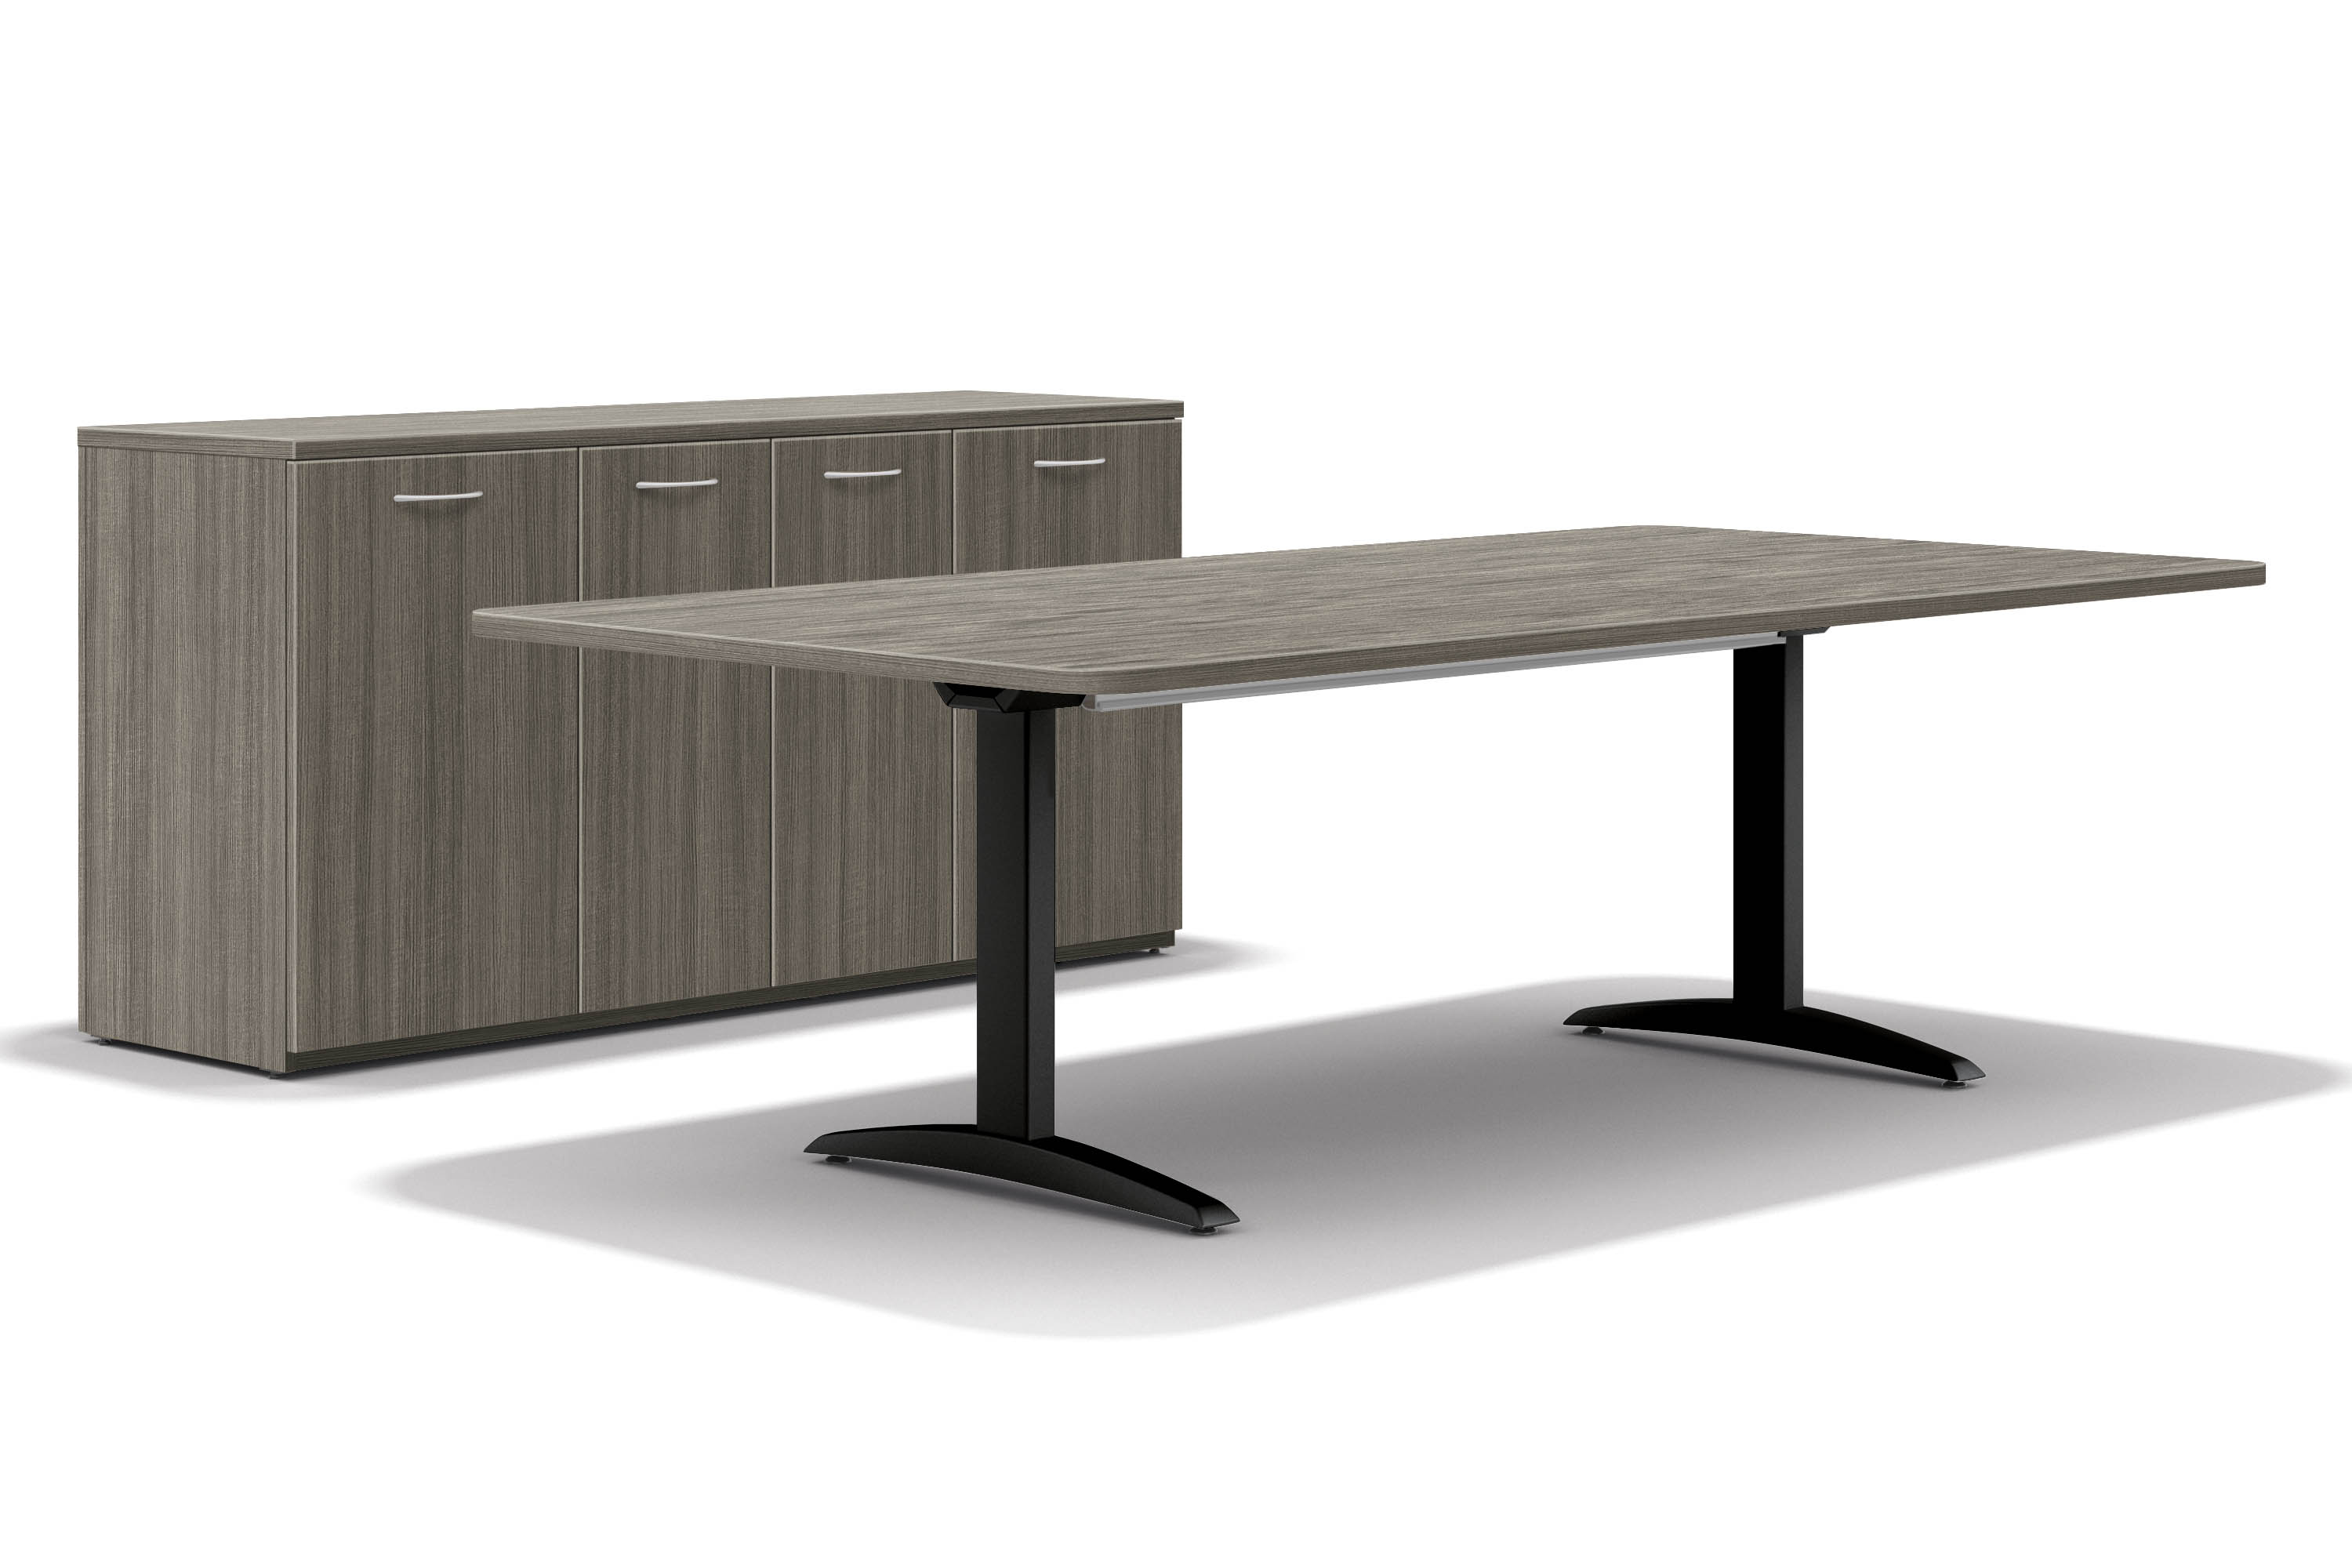 Hon T Leg Table with Credenza